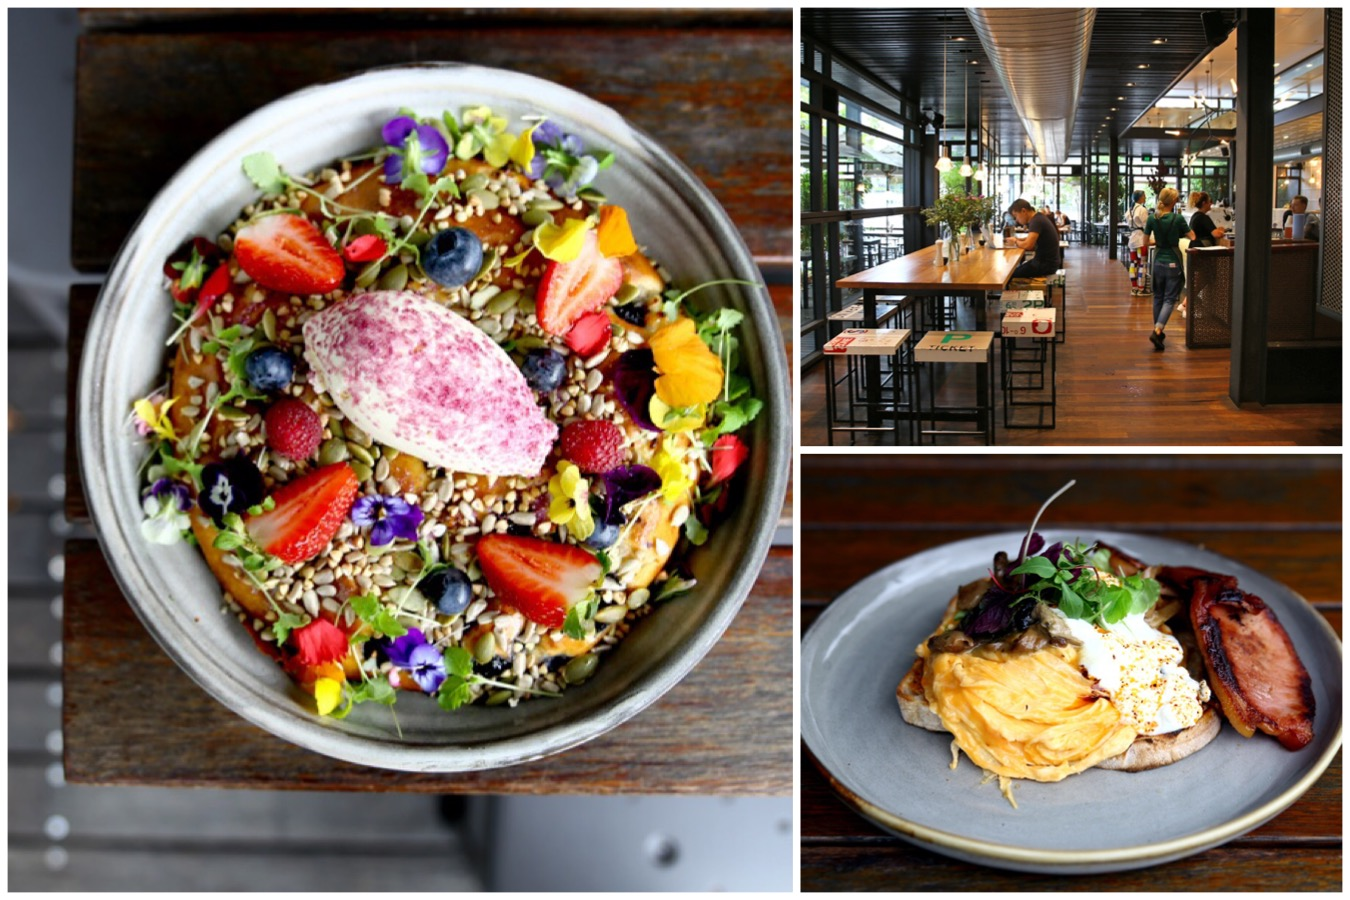 Top Paddock - Hip Cafe With Inventive Menu In Melbourne. Those Ricotta Hotcakes Started Here